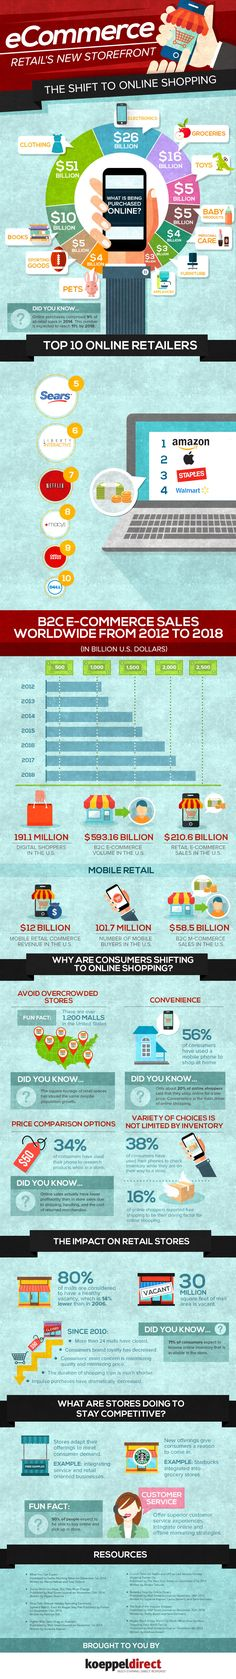 eCommerce Retail's New Storefront: The Shift to Online Shopping #infographic #Ecommerce #Marketing